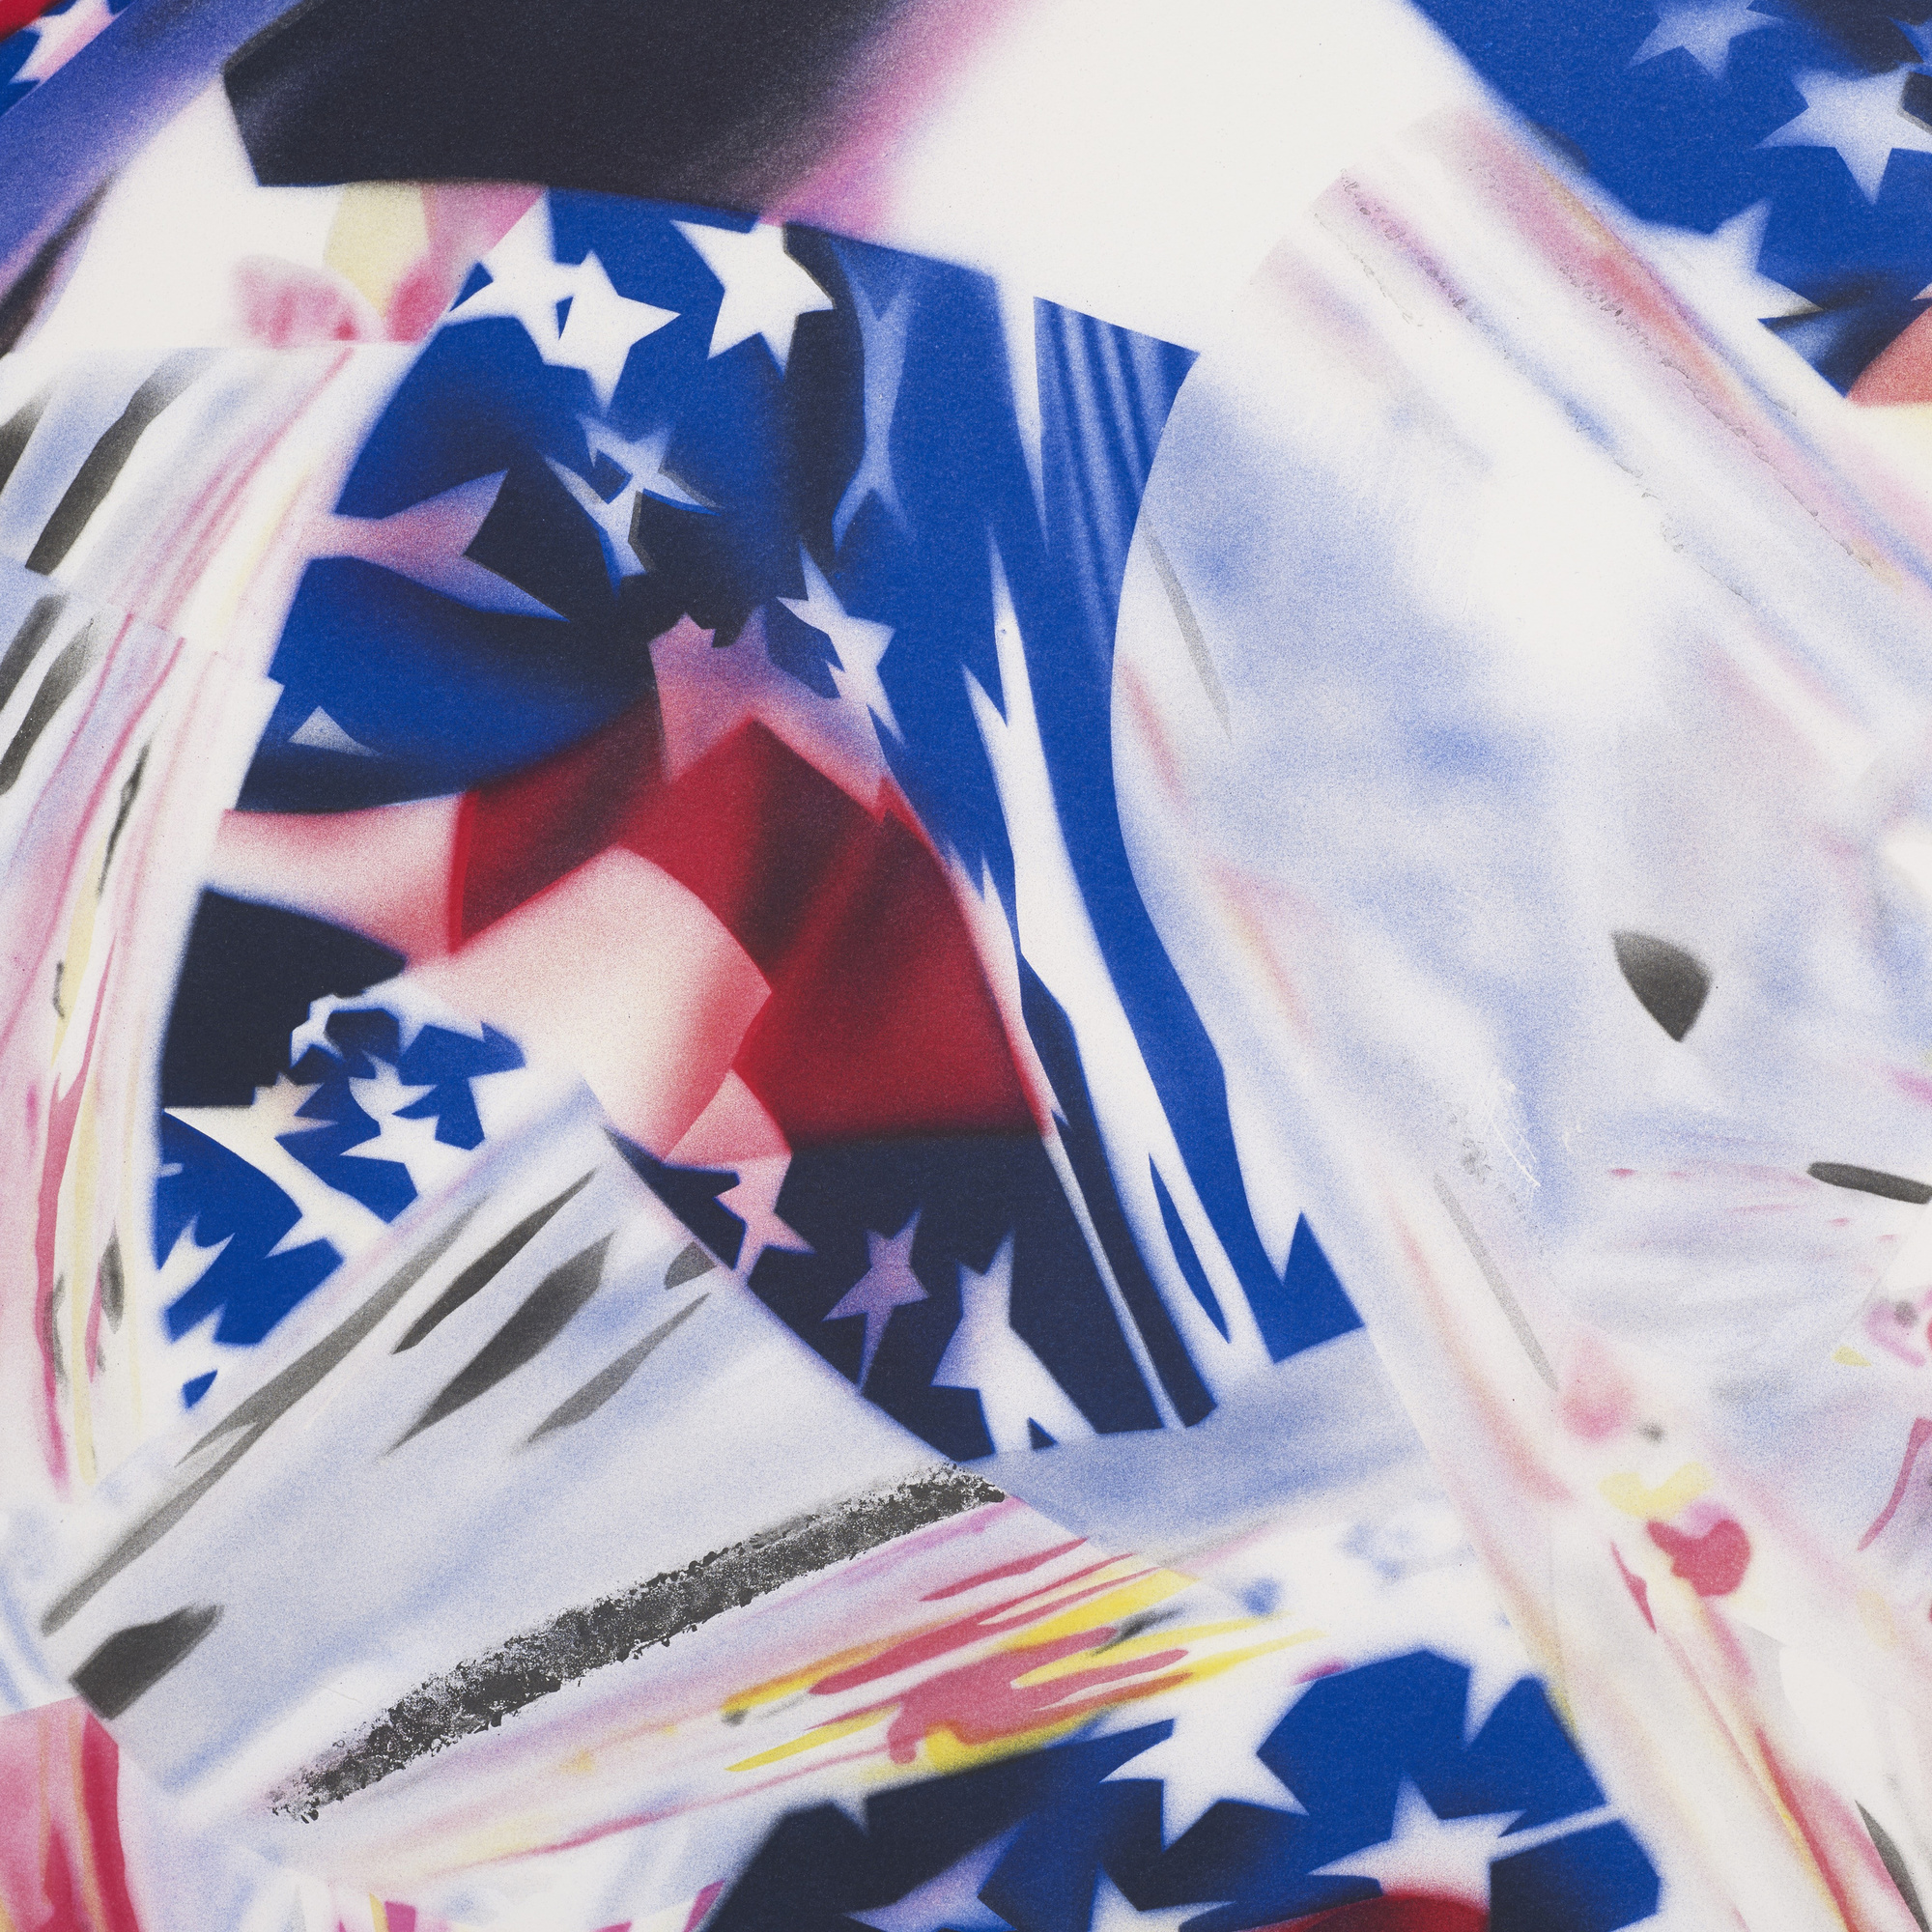 168: James Rosenquist / Stars and Stripes at the Speed of Light (2 of 3)